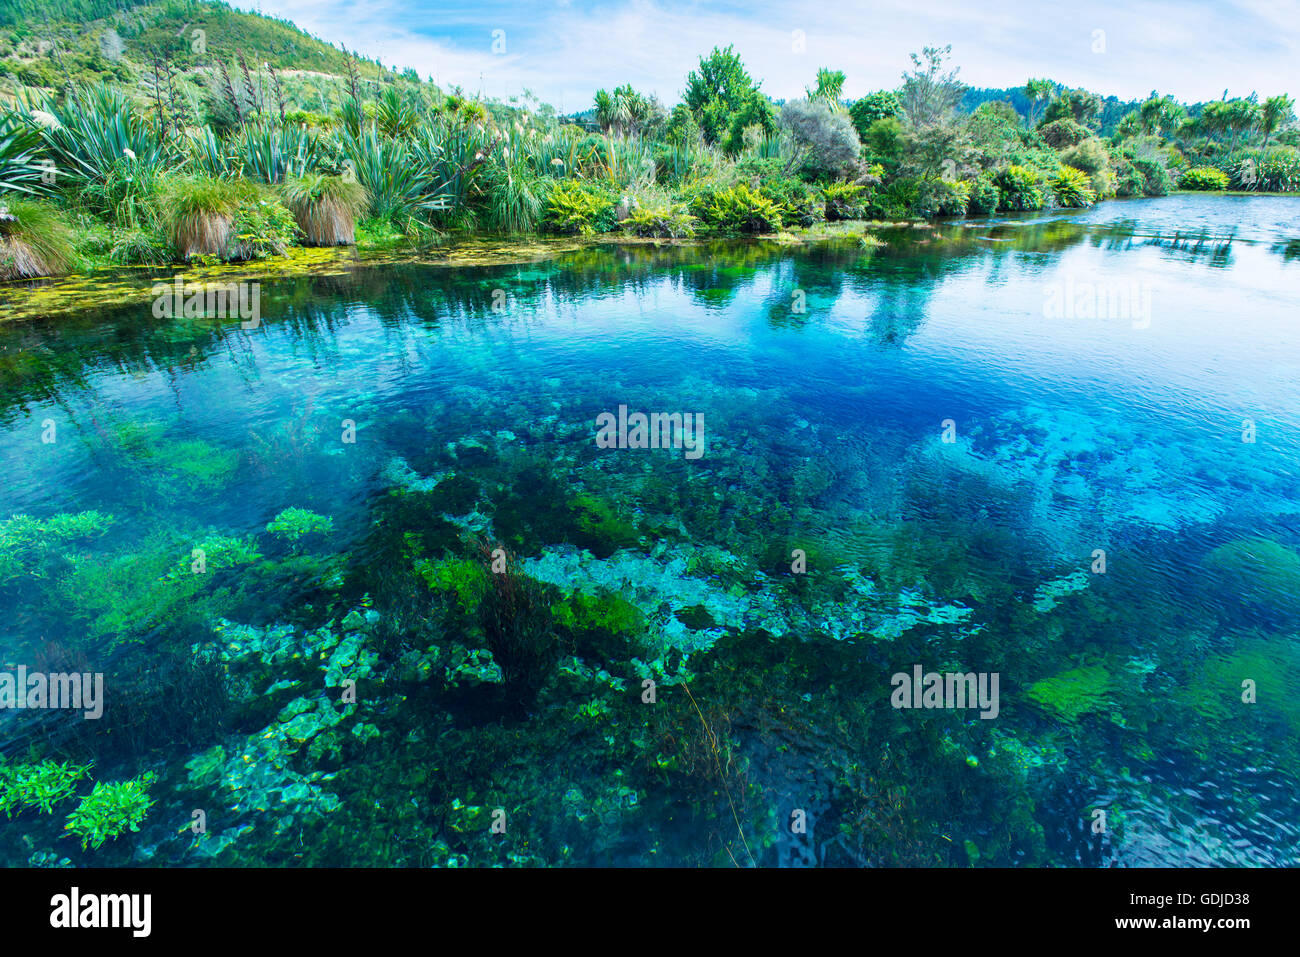 Te Waikoropupu Springs, Pupu Springs in the Golden Bay region on the South Island  in New Zealand - Stock Image